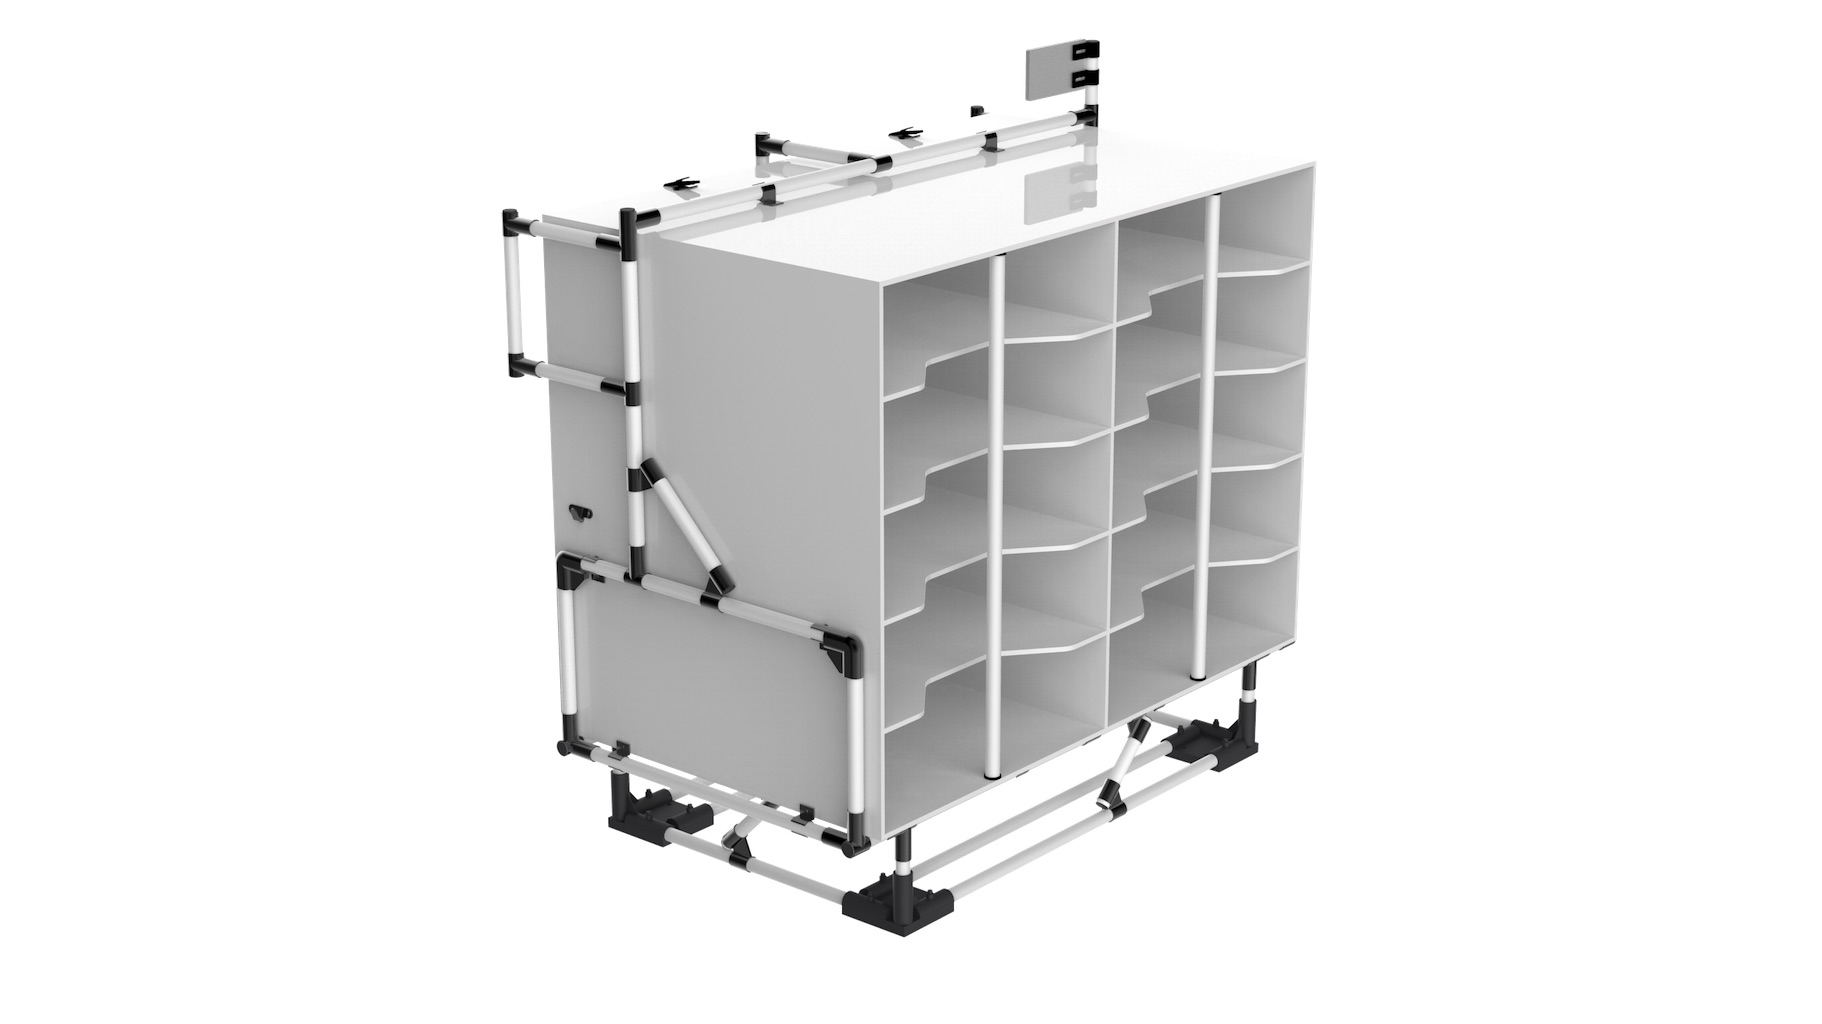 Electronic - Storage support with compartments to be placed on a rolling base. Ideal for the provision at the edge of the assembly line of electrical wiring (in this case). Easy supply and sorting.